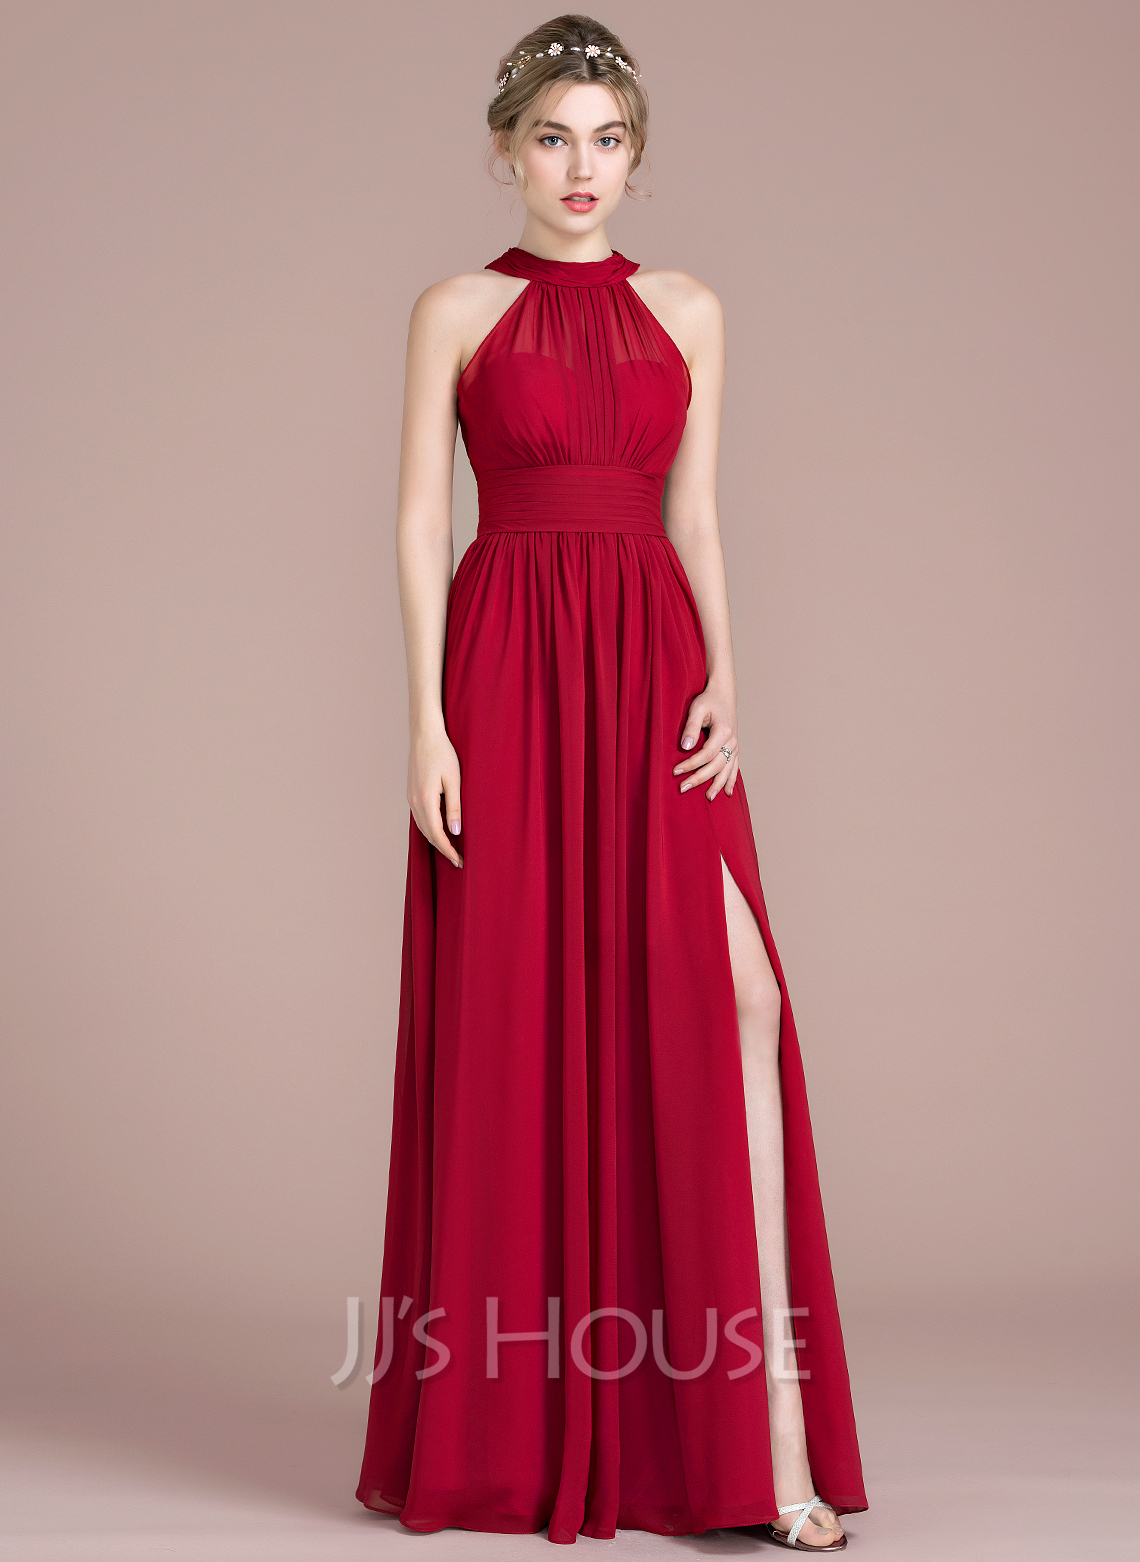 2322d894834 A-Line Princess Scoop Neck Floor-Length Chiffon Bridesmaid Dress With  Ruffle Bow. Loading zoom